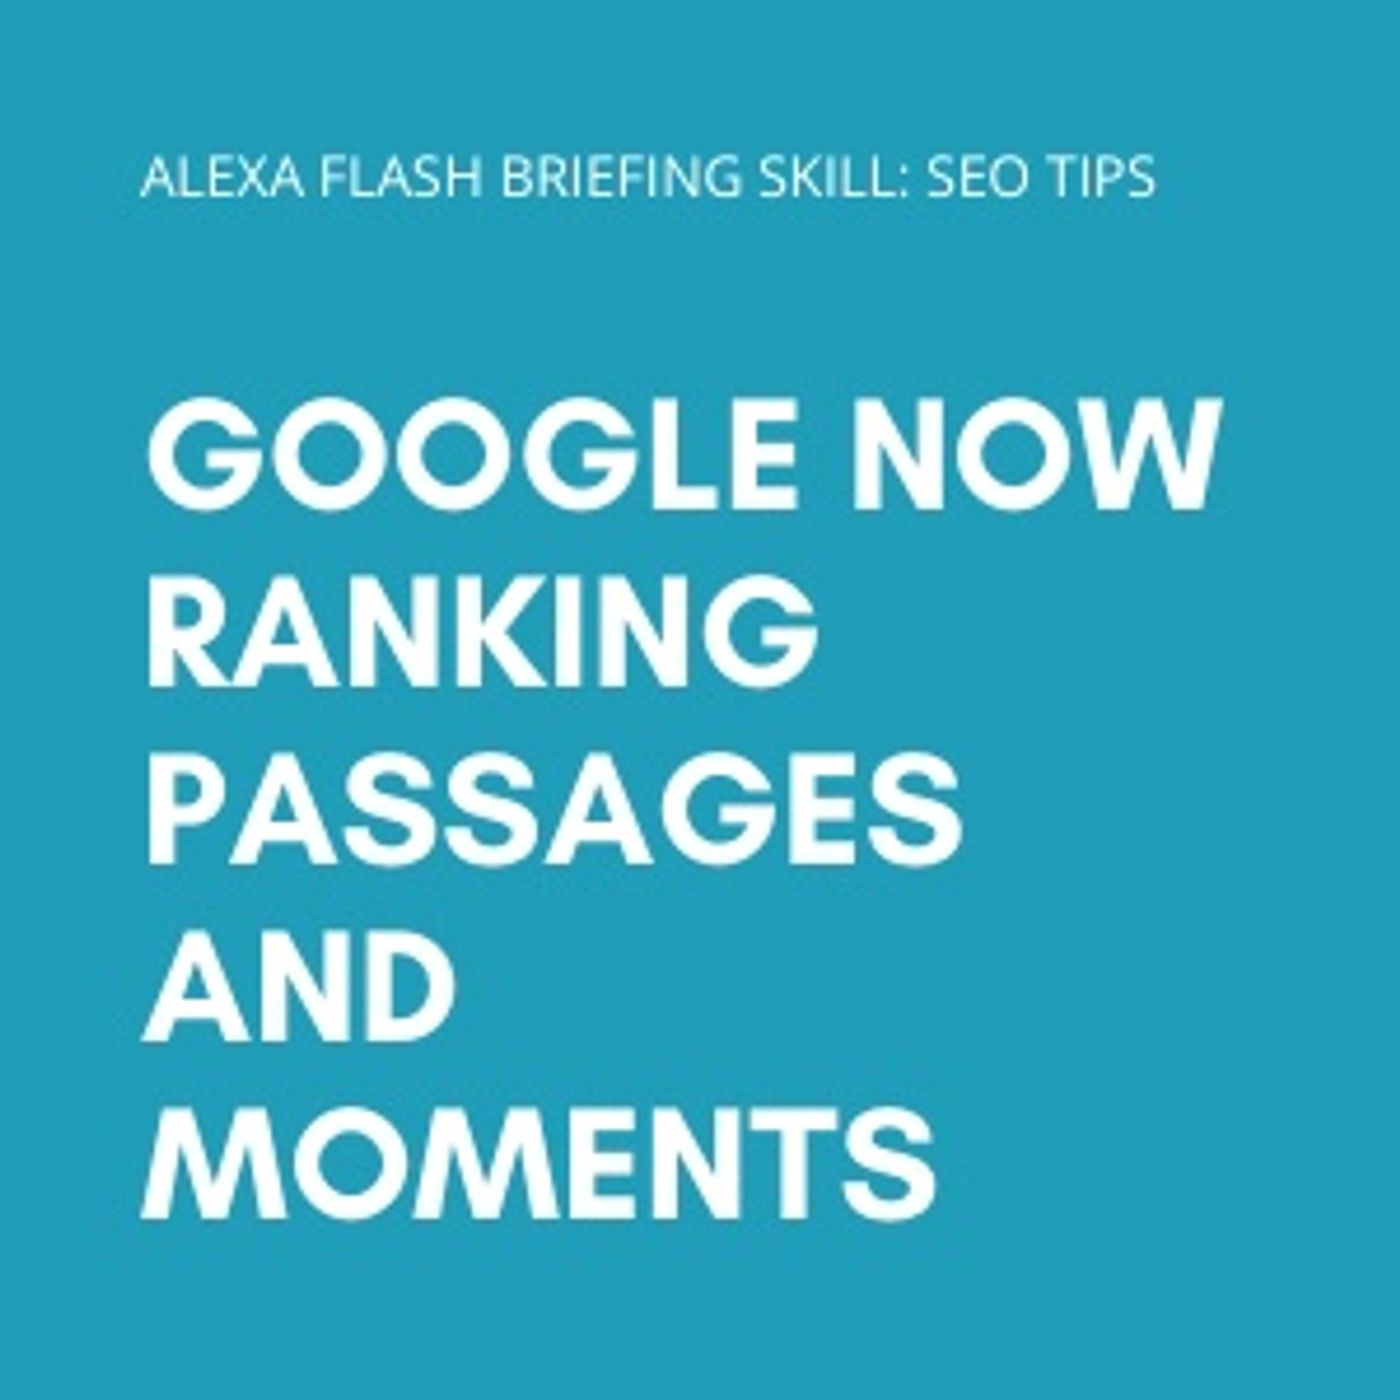 Google now ranking passages and moments